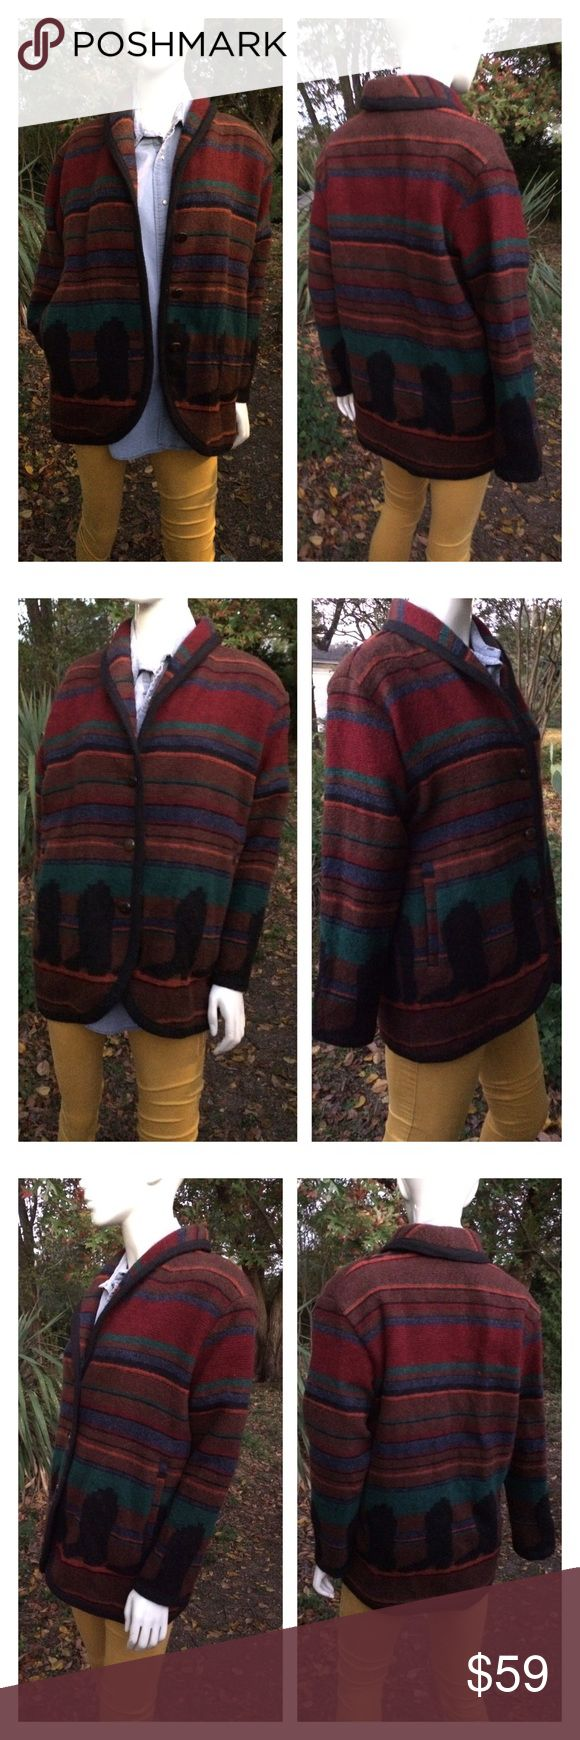 Unisex VTG Woolrich Jacket Indian Blanket Medium VTG Woolrich Long Coat Jacket Indian Blanket Wool Southwest Ranch Men's SZ M WOULD FIT A WOMEN LARGE Made in USA  In good condition - no piling   Rare VTG Woolrich Long Coat Jacket Beatific southwest boot design  Than you. 🏜🌅🌞👢 Woolrich Jackets & Coats